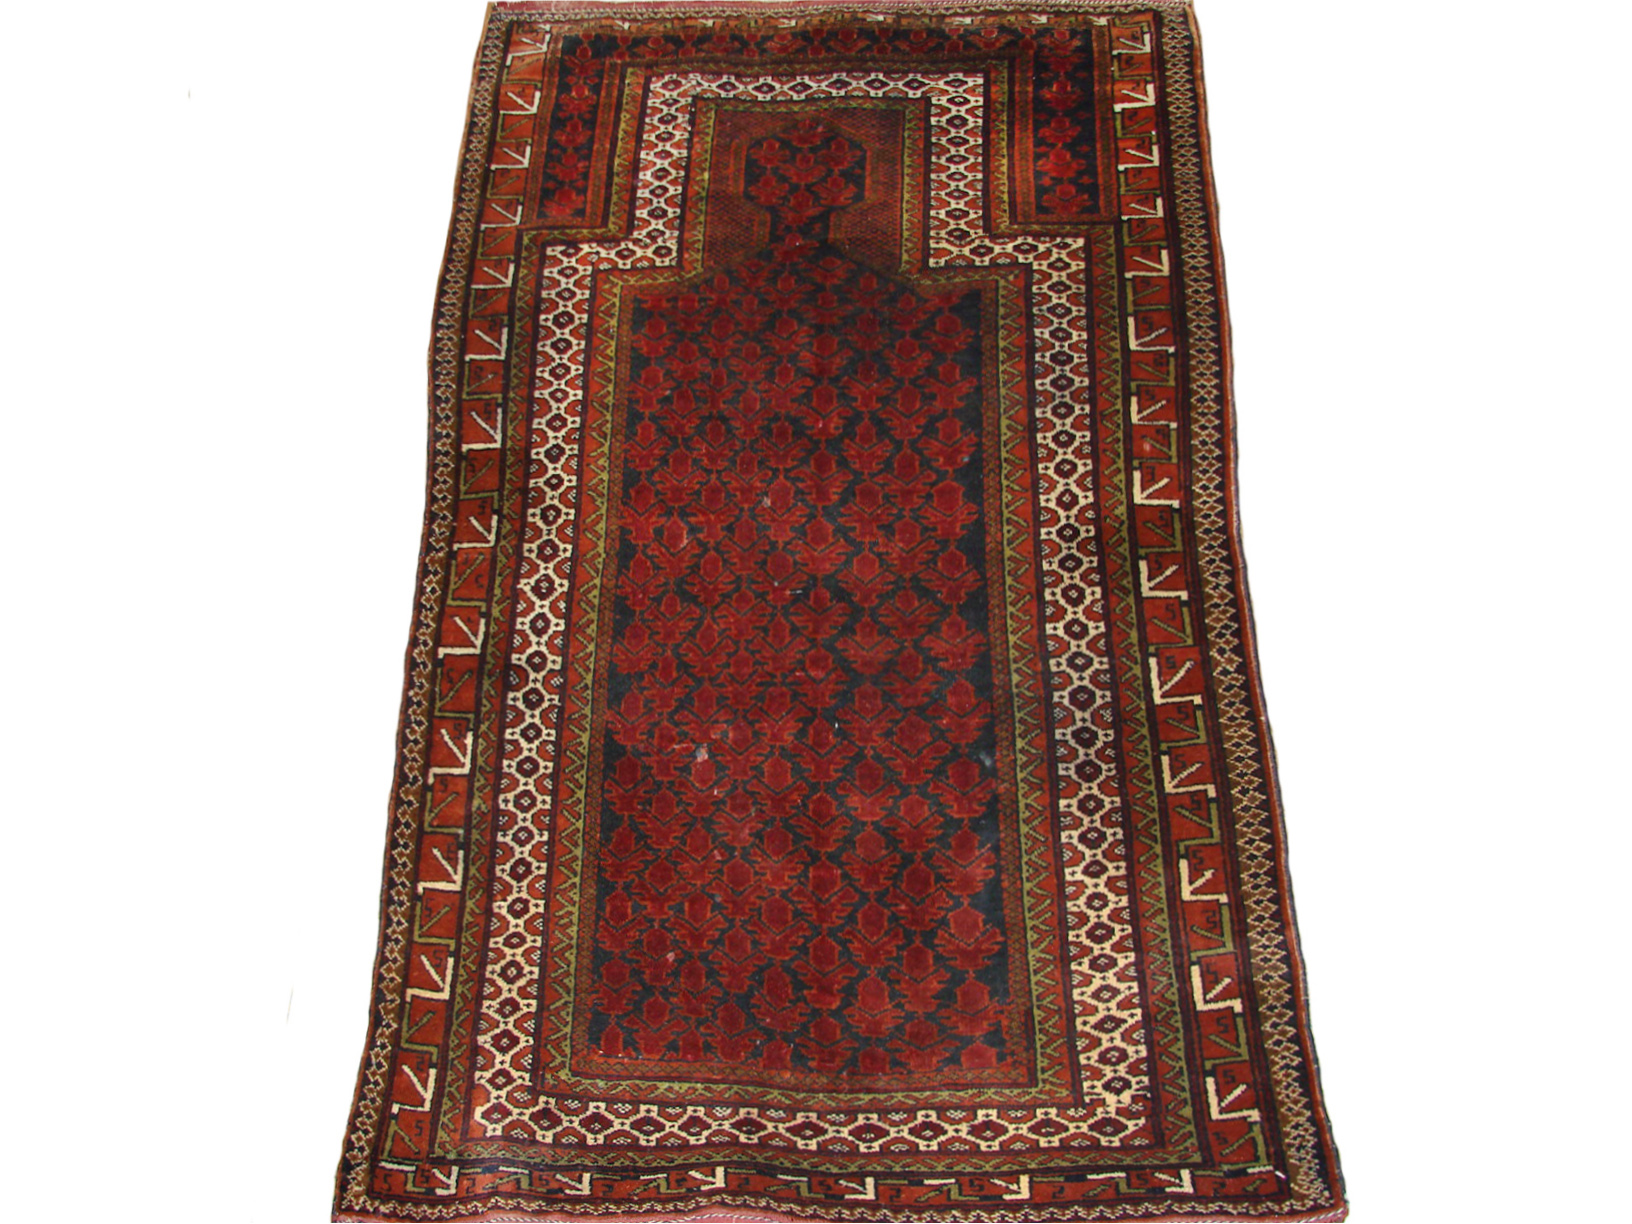 3x5 Antique Revival Hand Knotted Wool Area Rug - MR19485